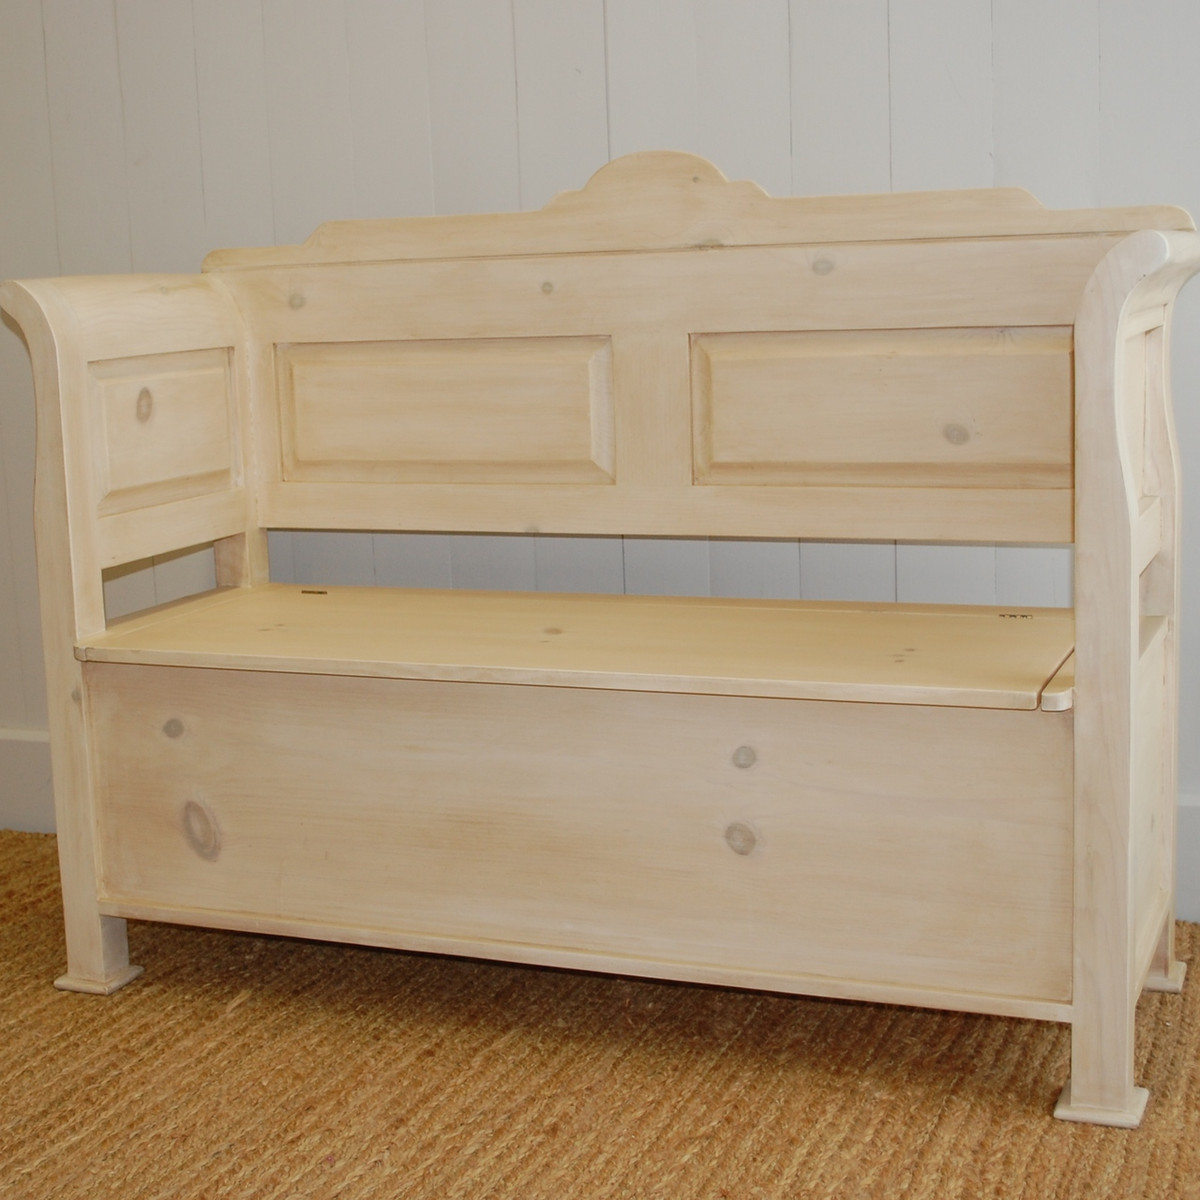 Farmhouse Entry Bench Small English Farmhouse Furniture Ann Bradshaw Kirchofer